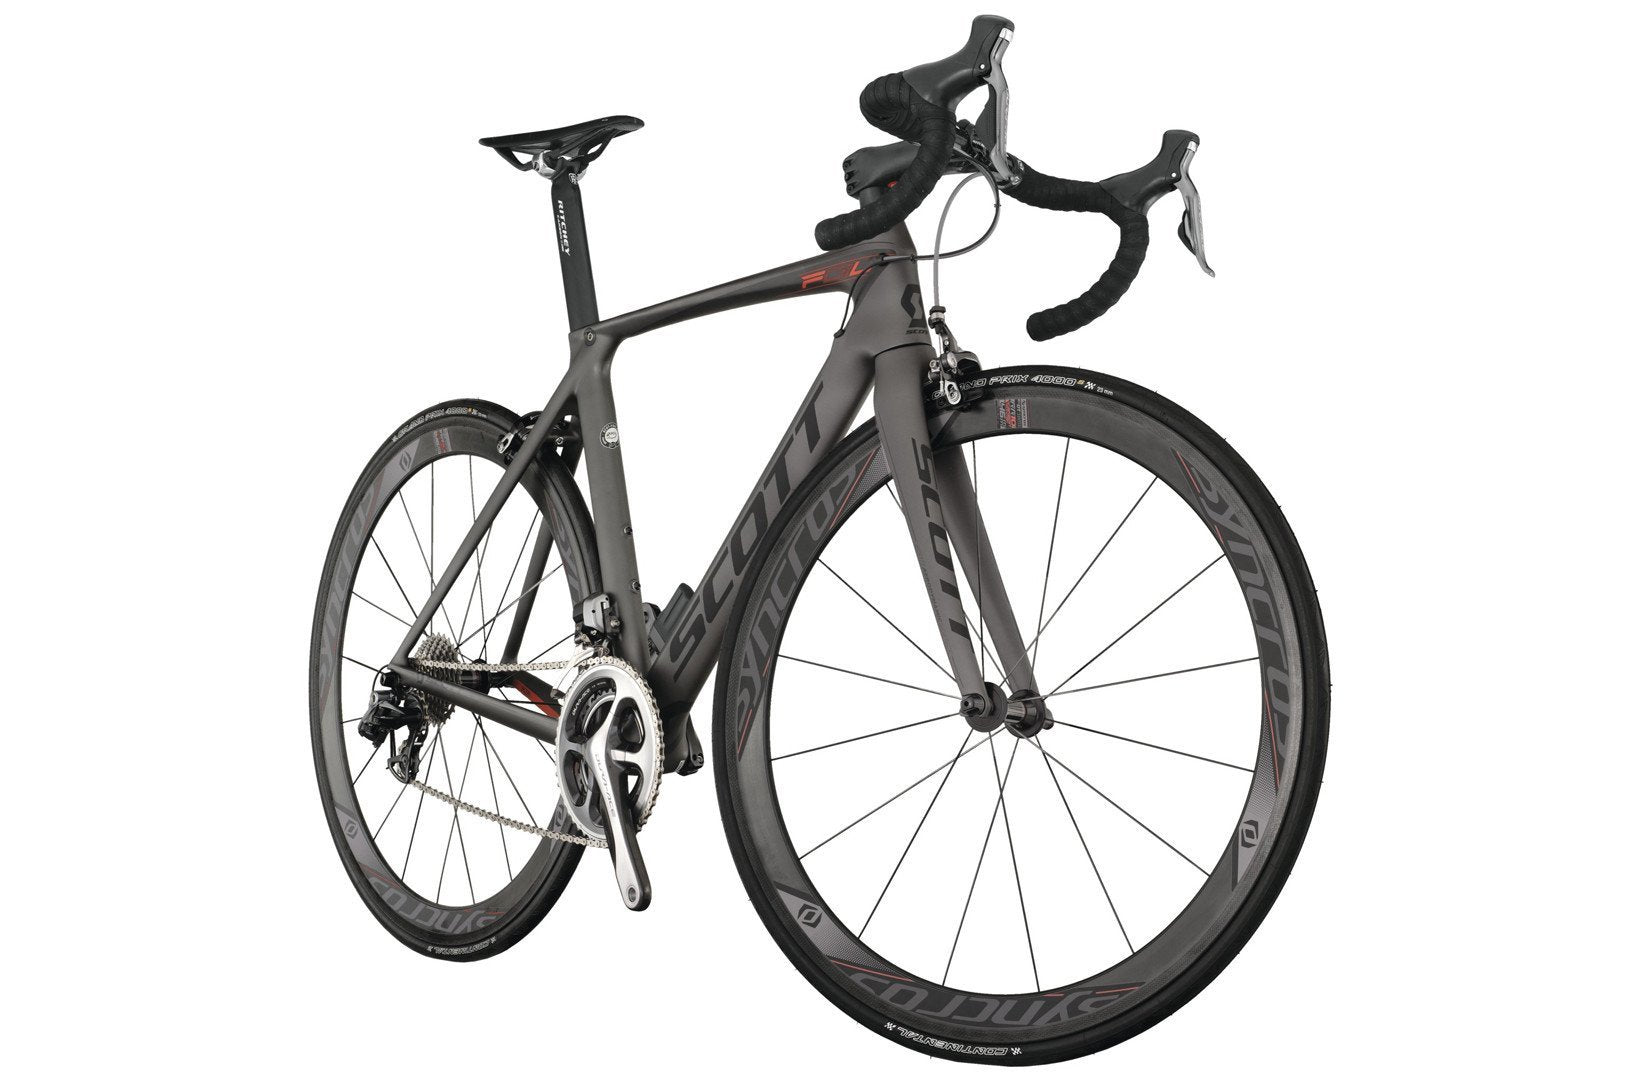 2013 Scott Foil Premium Road Bike Compact Drive Train Road Bike - Racer Sportif